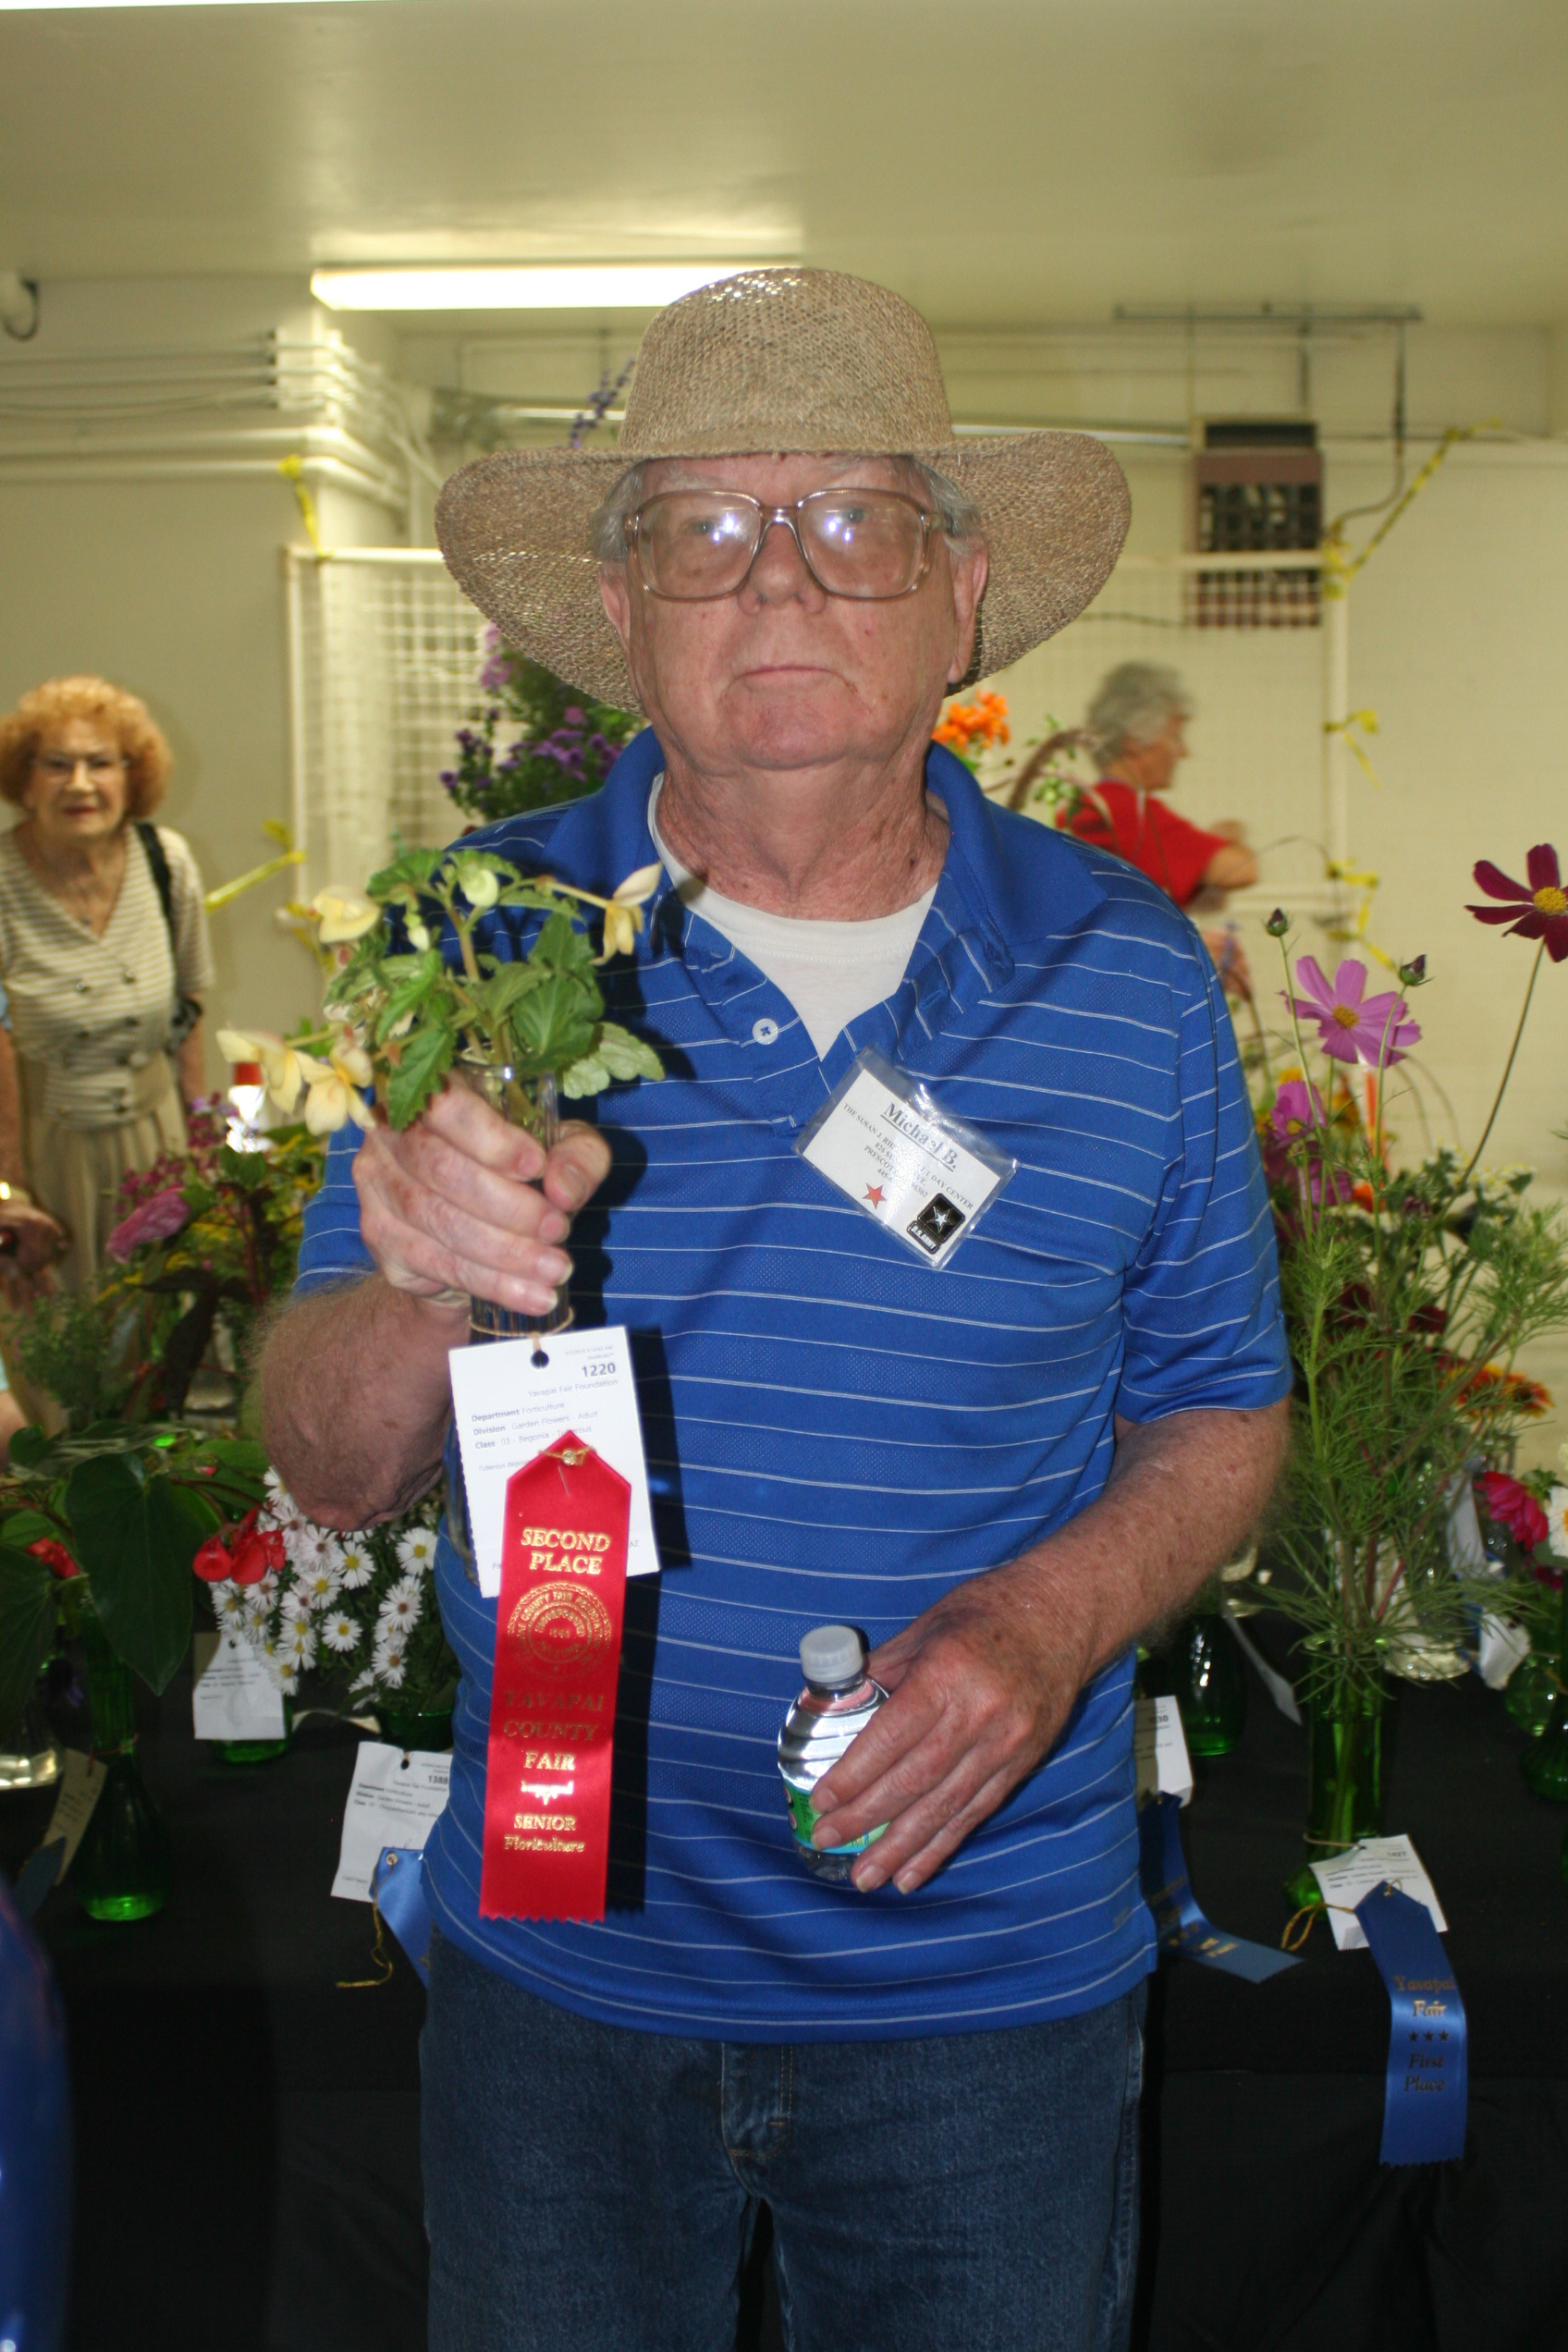 Veteran Mike Brown and his second place prize at the Yavapai County Fair